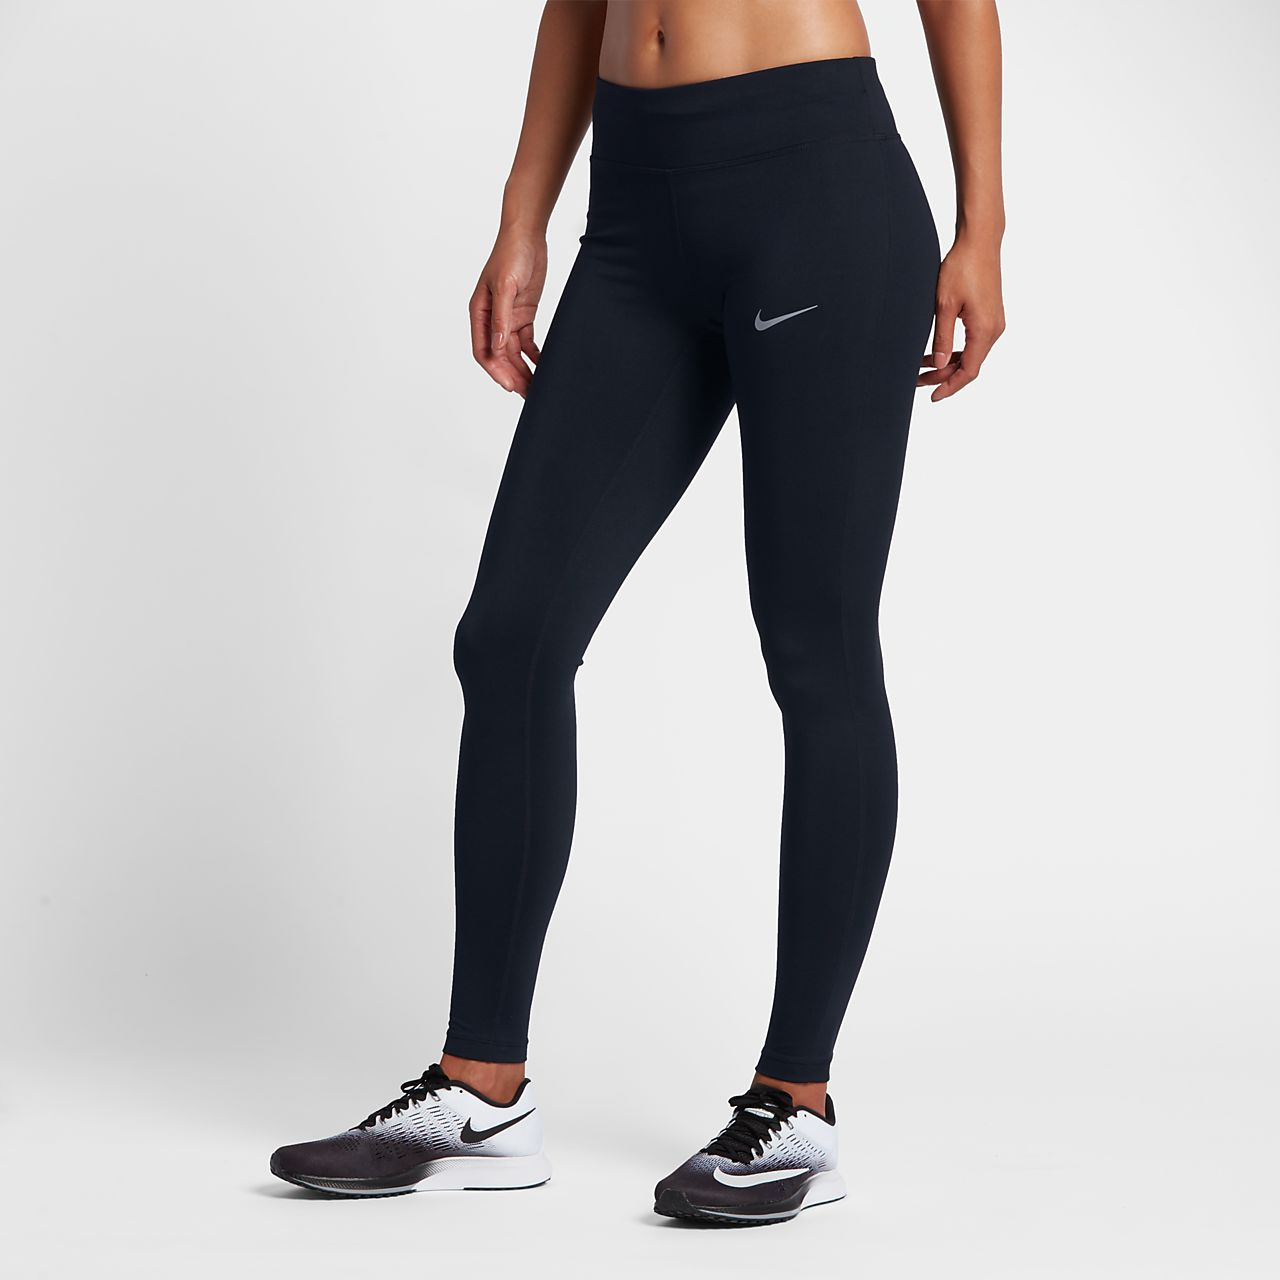 19ba9aced1027 Nike Essential Women's Mid-Rise Running Tights. Nike.com GB